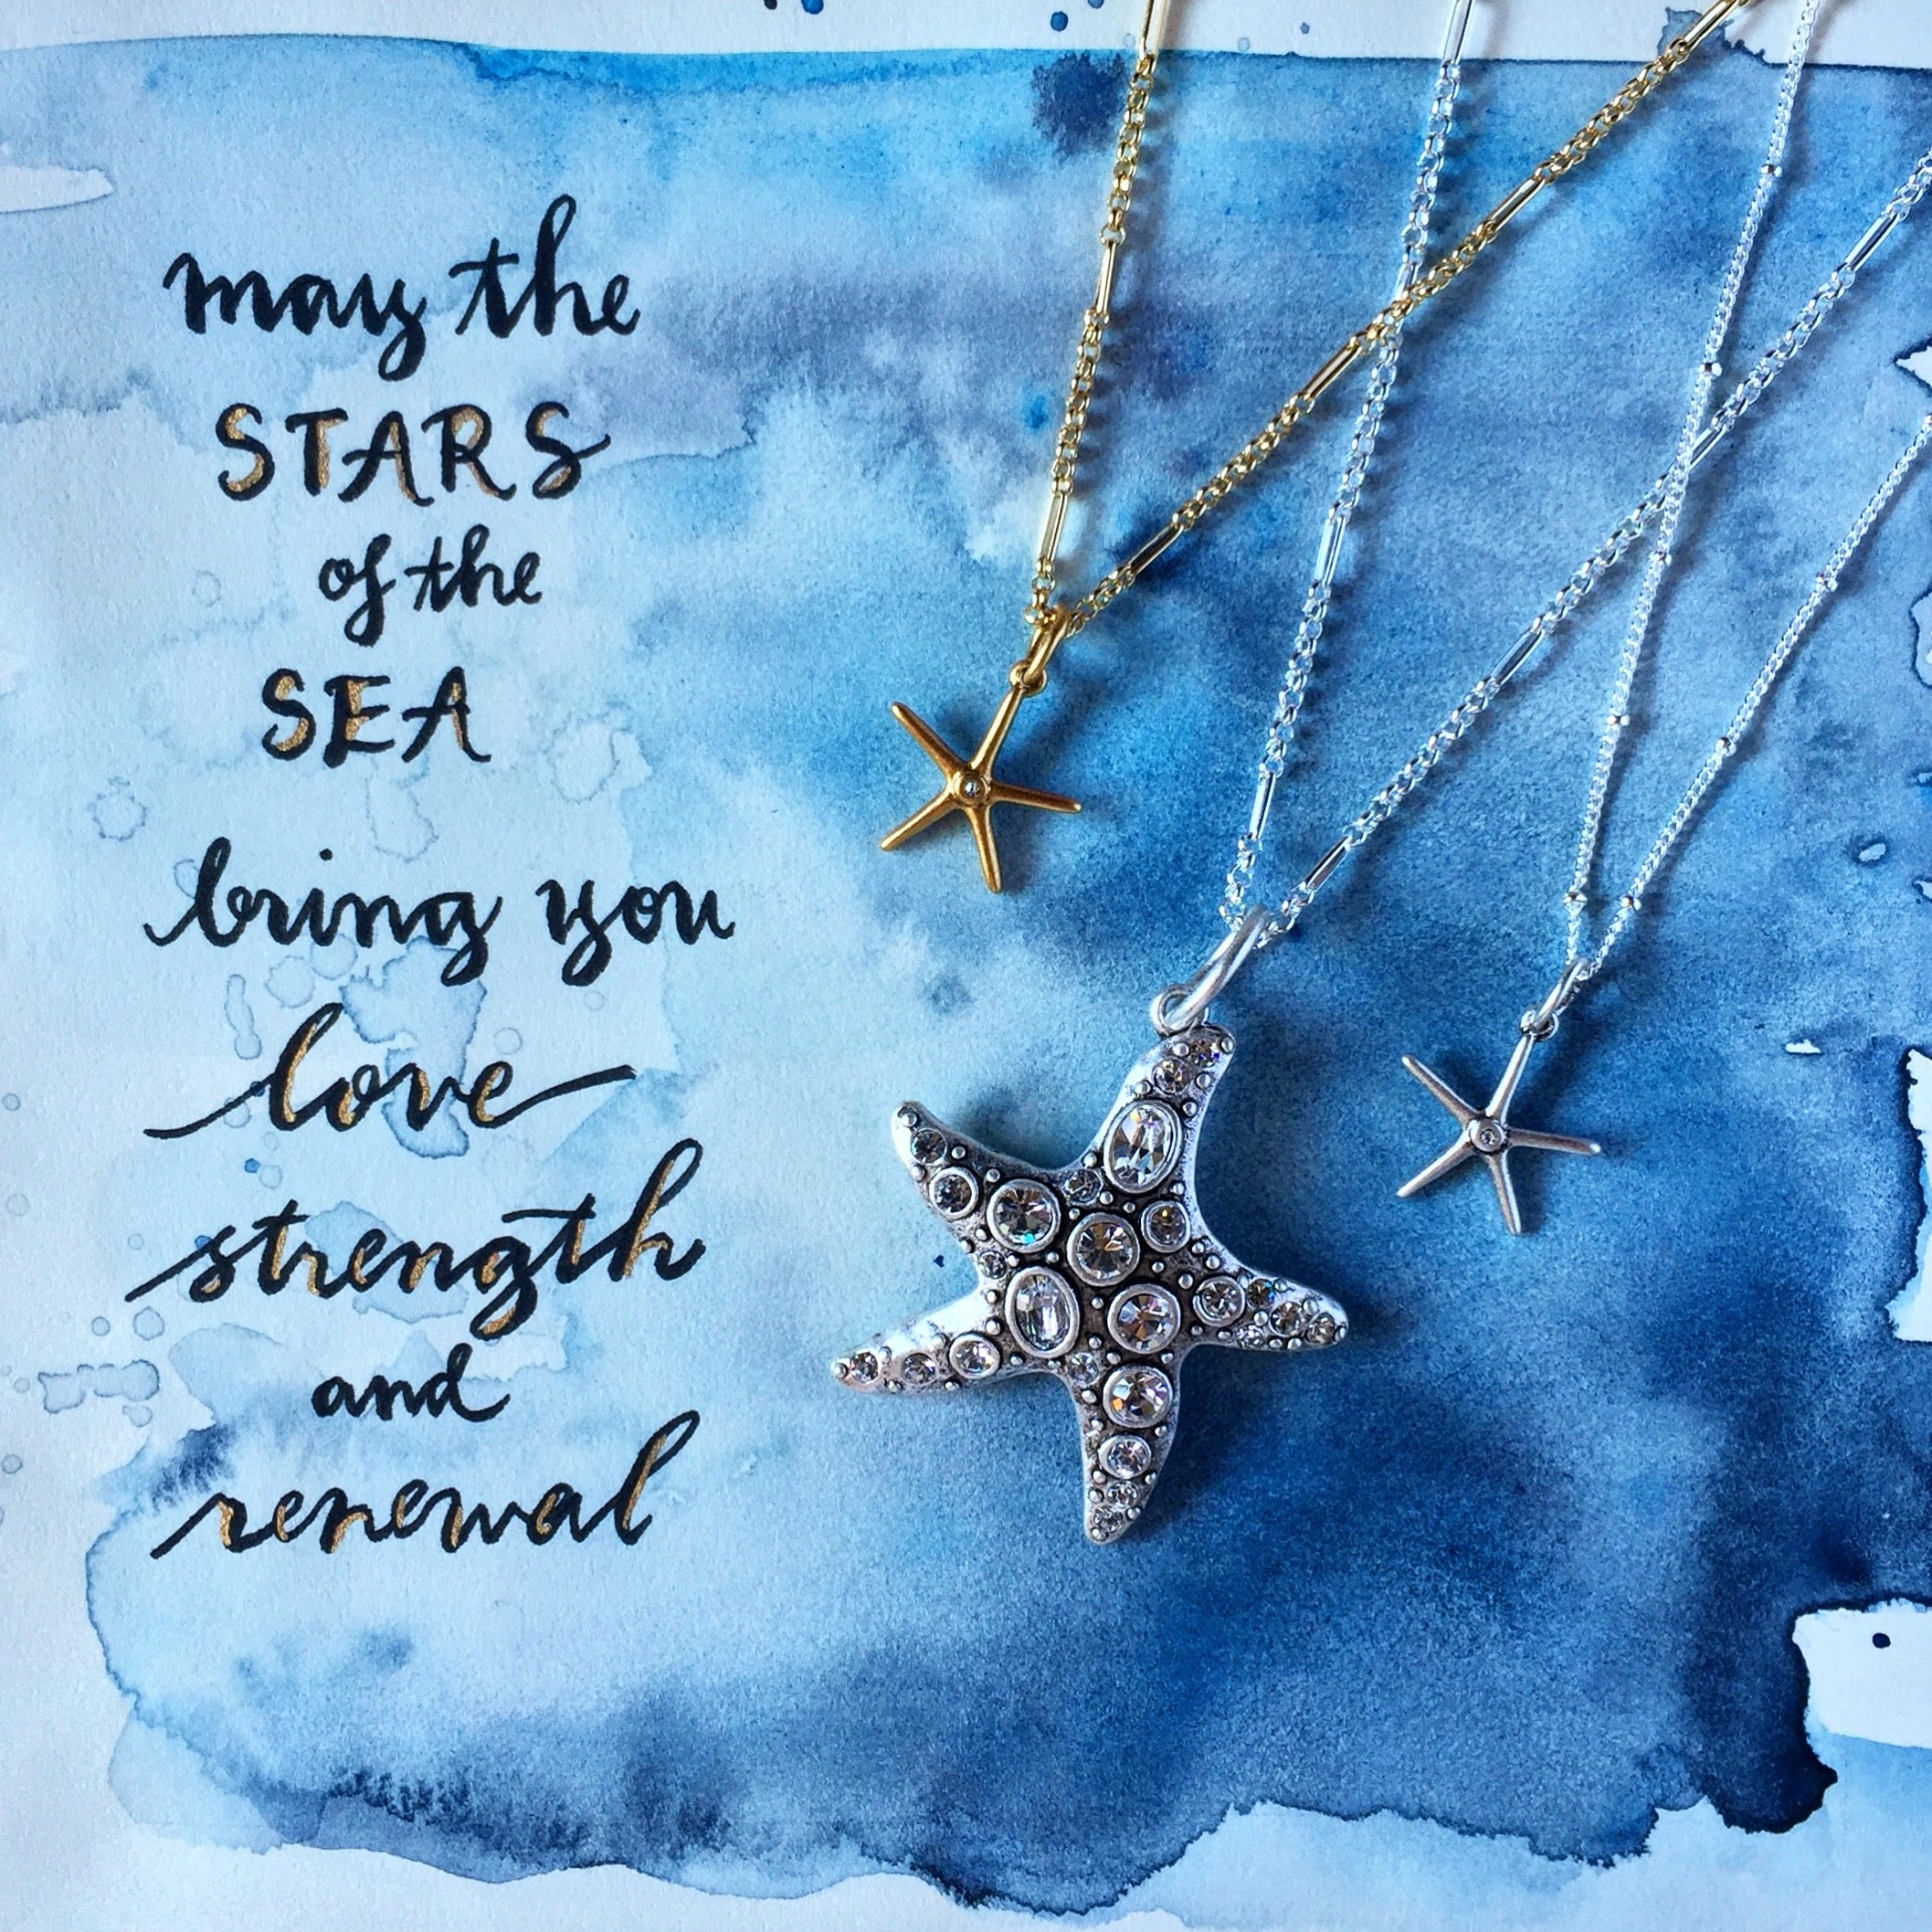 #SequinSayings - Stars of the Sea